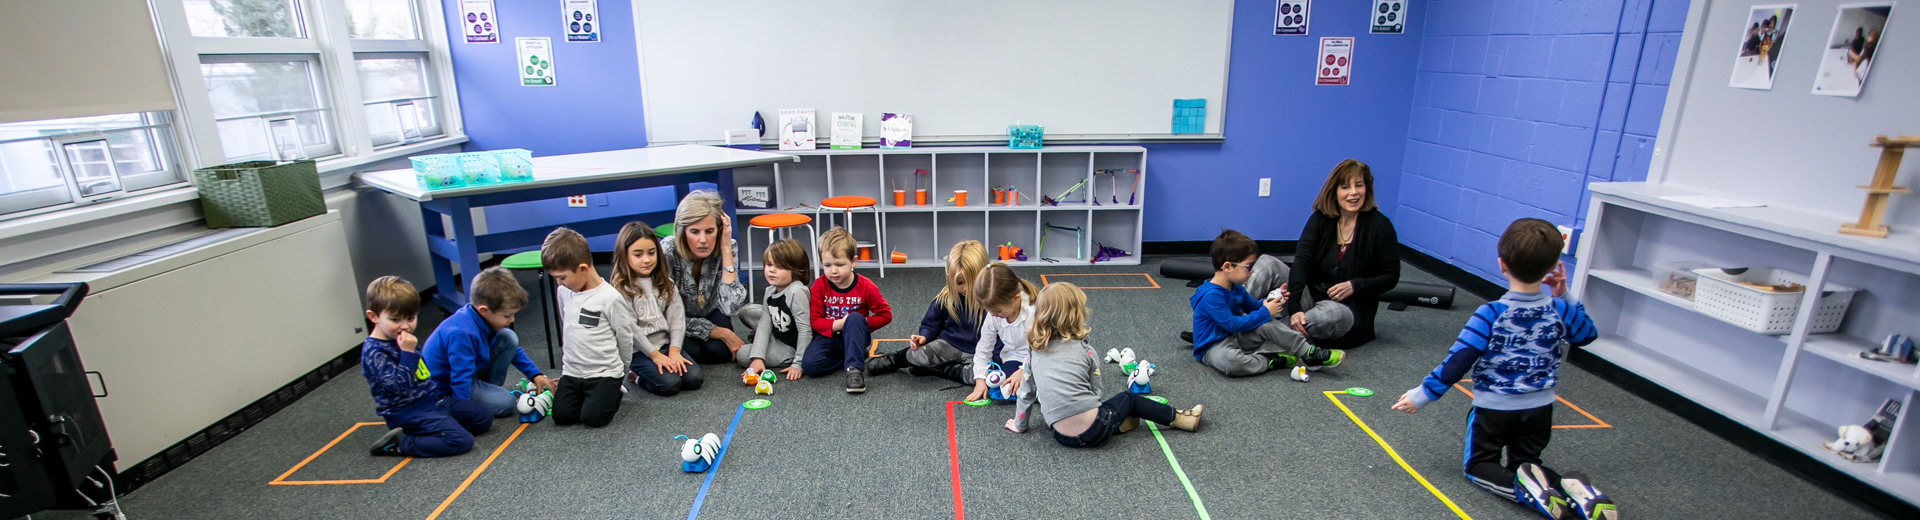 Pre-schoolers playing with robotics